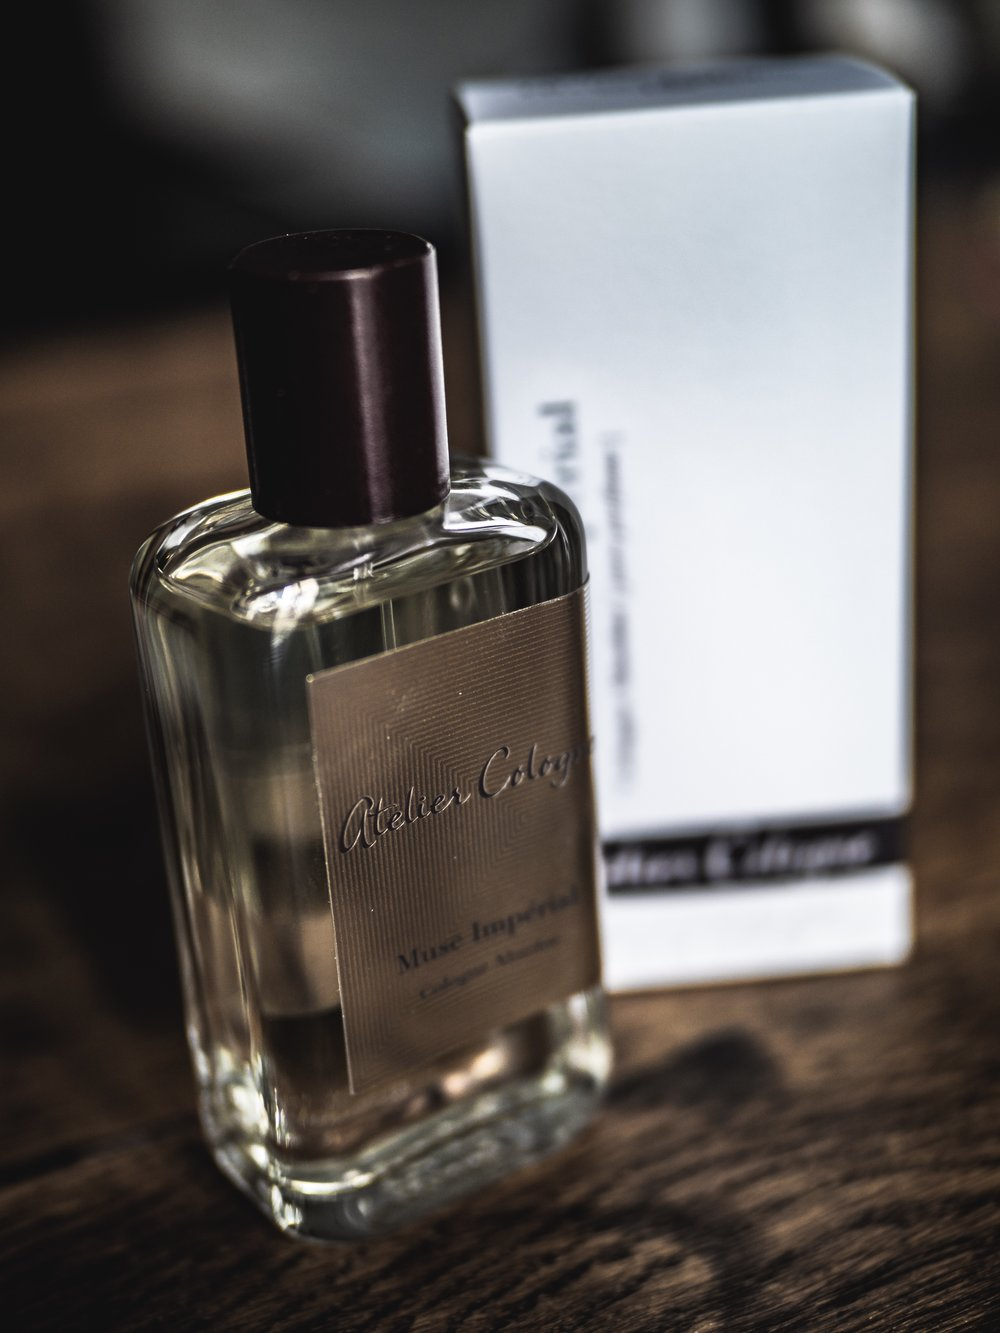 Top 5 Autumn Winter Fragrances for the Colder Weather Atelier Cologne Musc Impérial